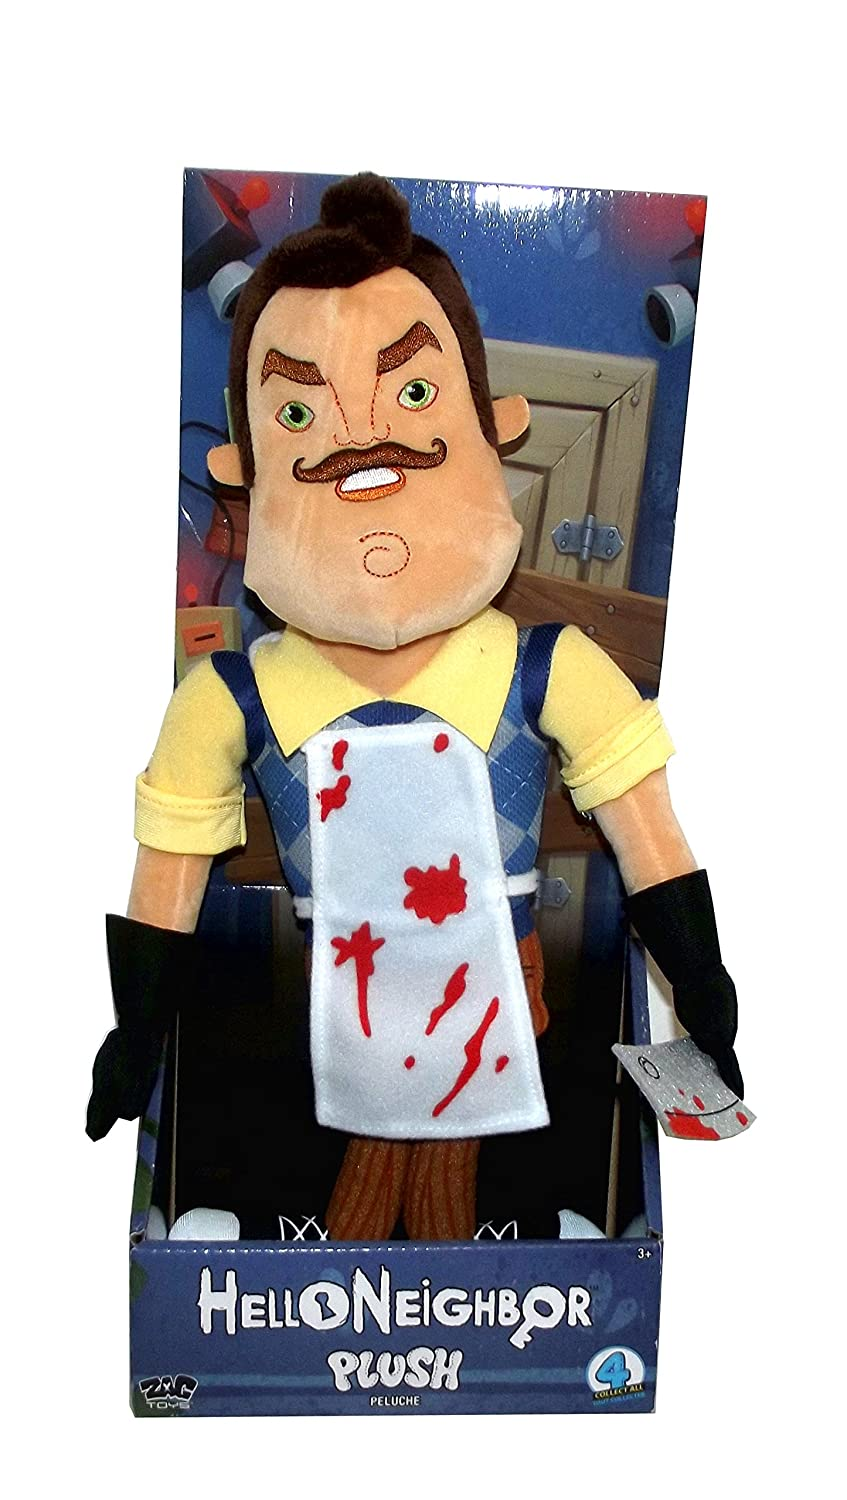 Amazon.com: Hello Neighbor Large Neighbor Plush Figure Toy, 15 inches (Holding Coffee Mug): Toys & Games